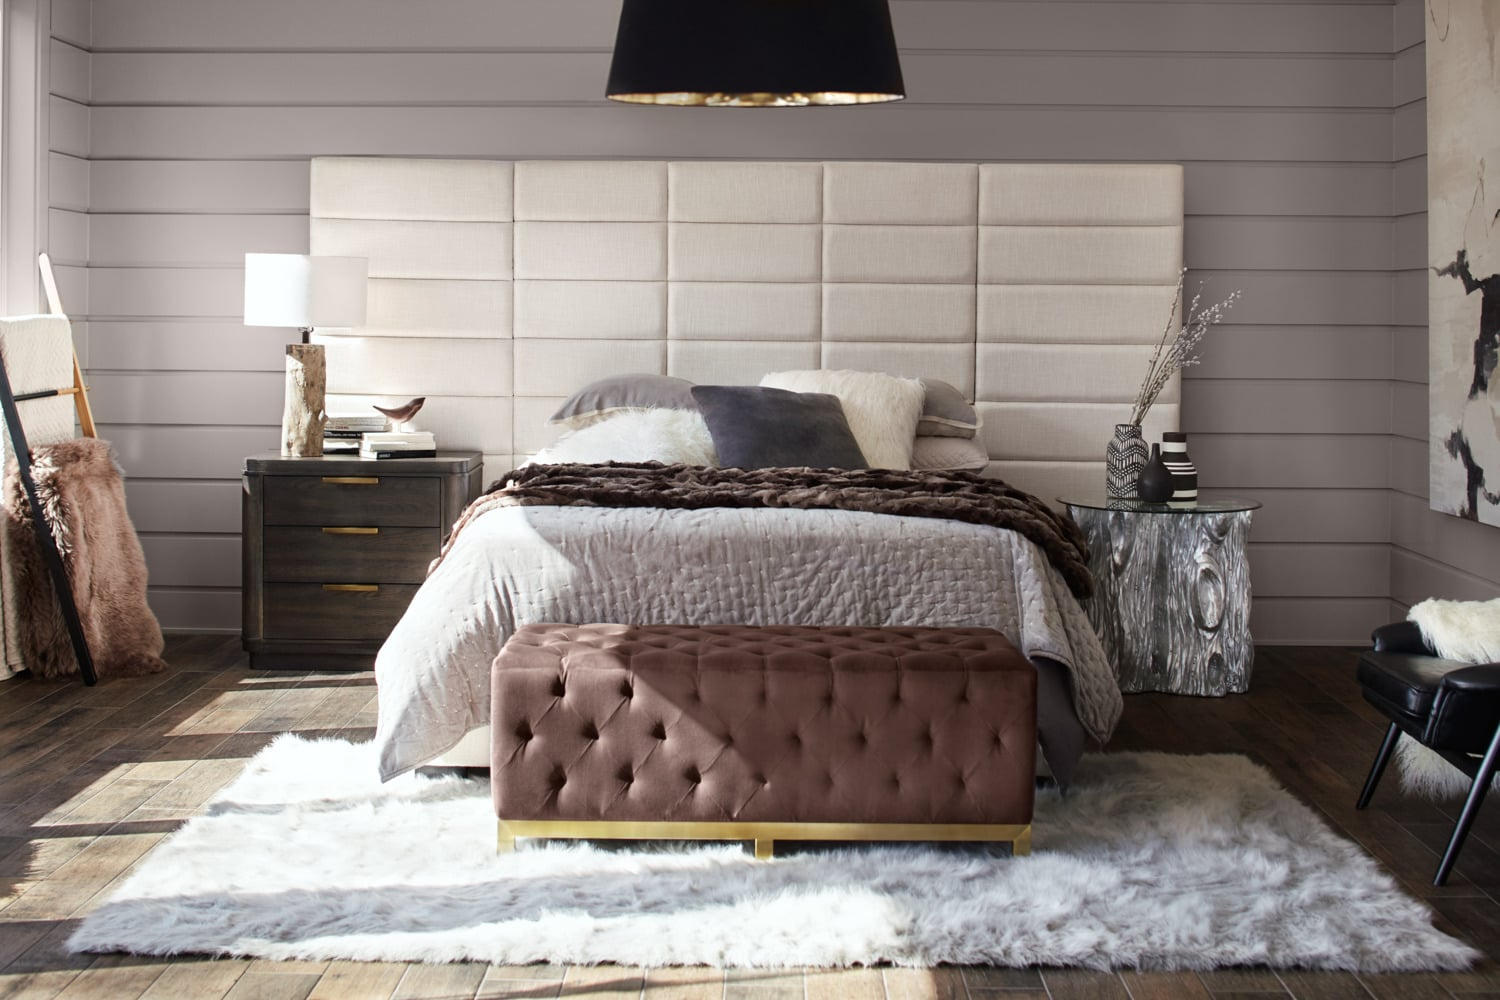 Wall queen bed image collections home wall decoration ideas bellamy queen upholstered wall bed white american signature click to change image amipublicfo image collections amipublicfo Image collections